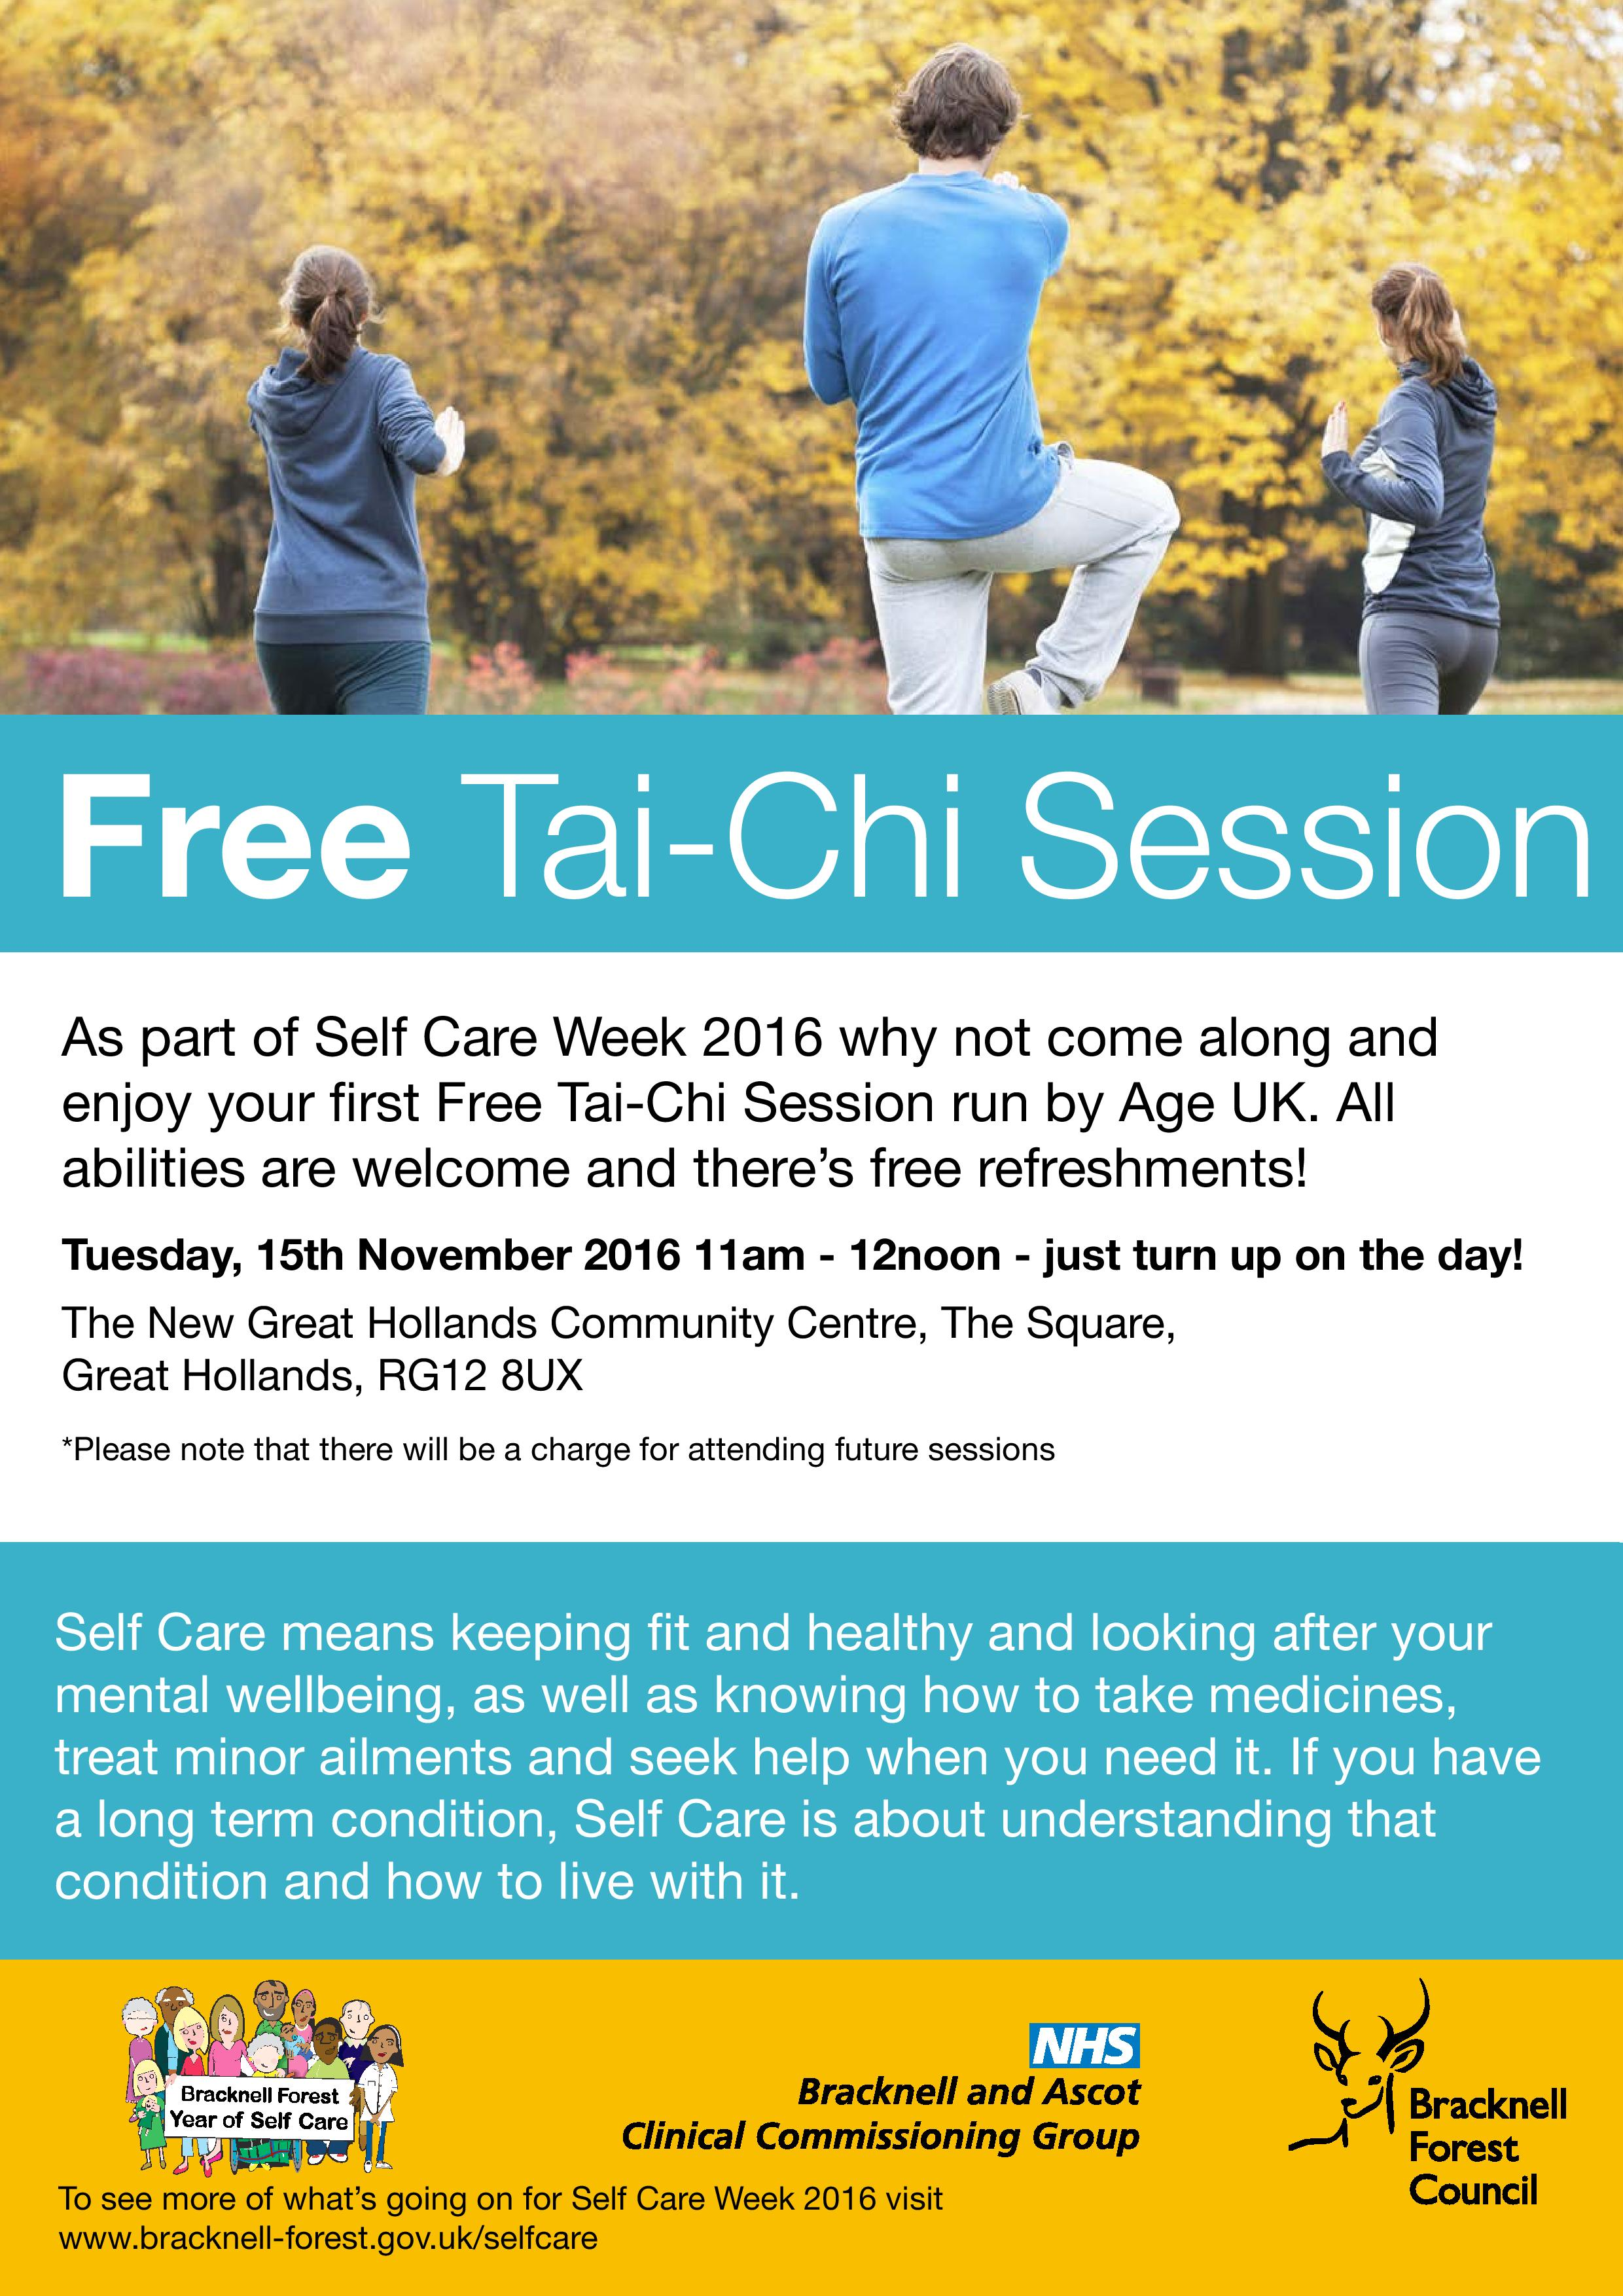 scw-free-tai-chi-a4-page-001-2 - East Berkshire Primary Care